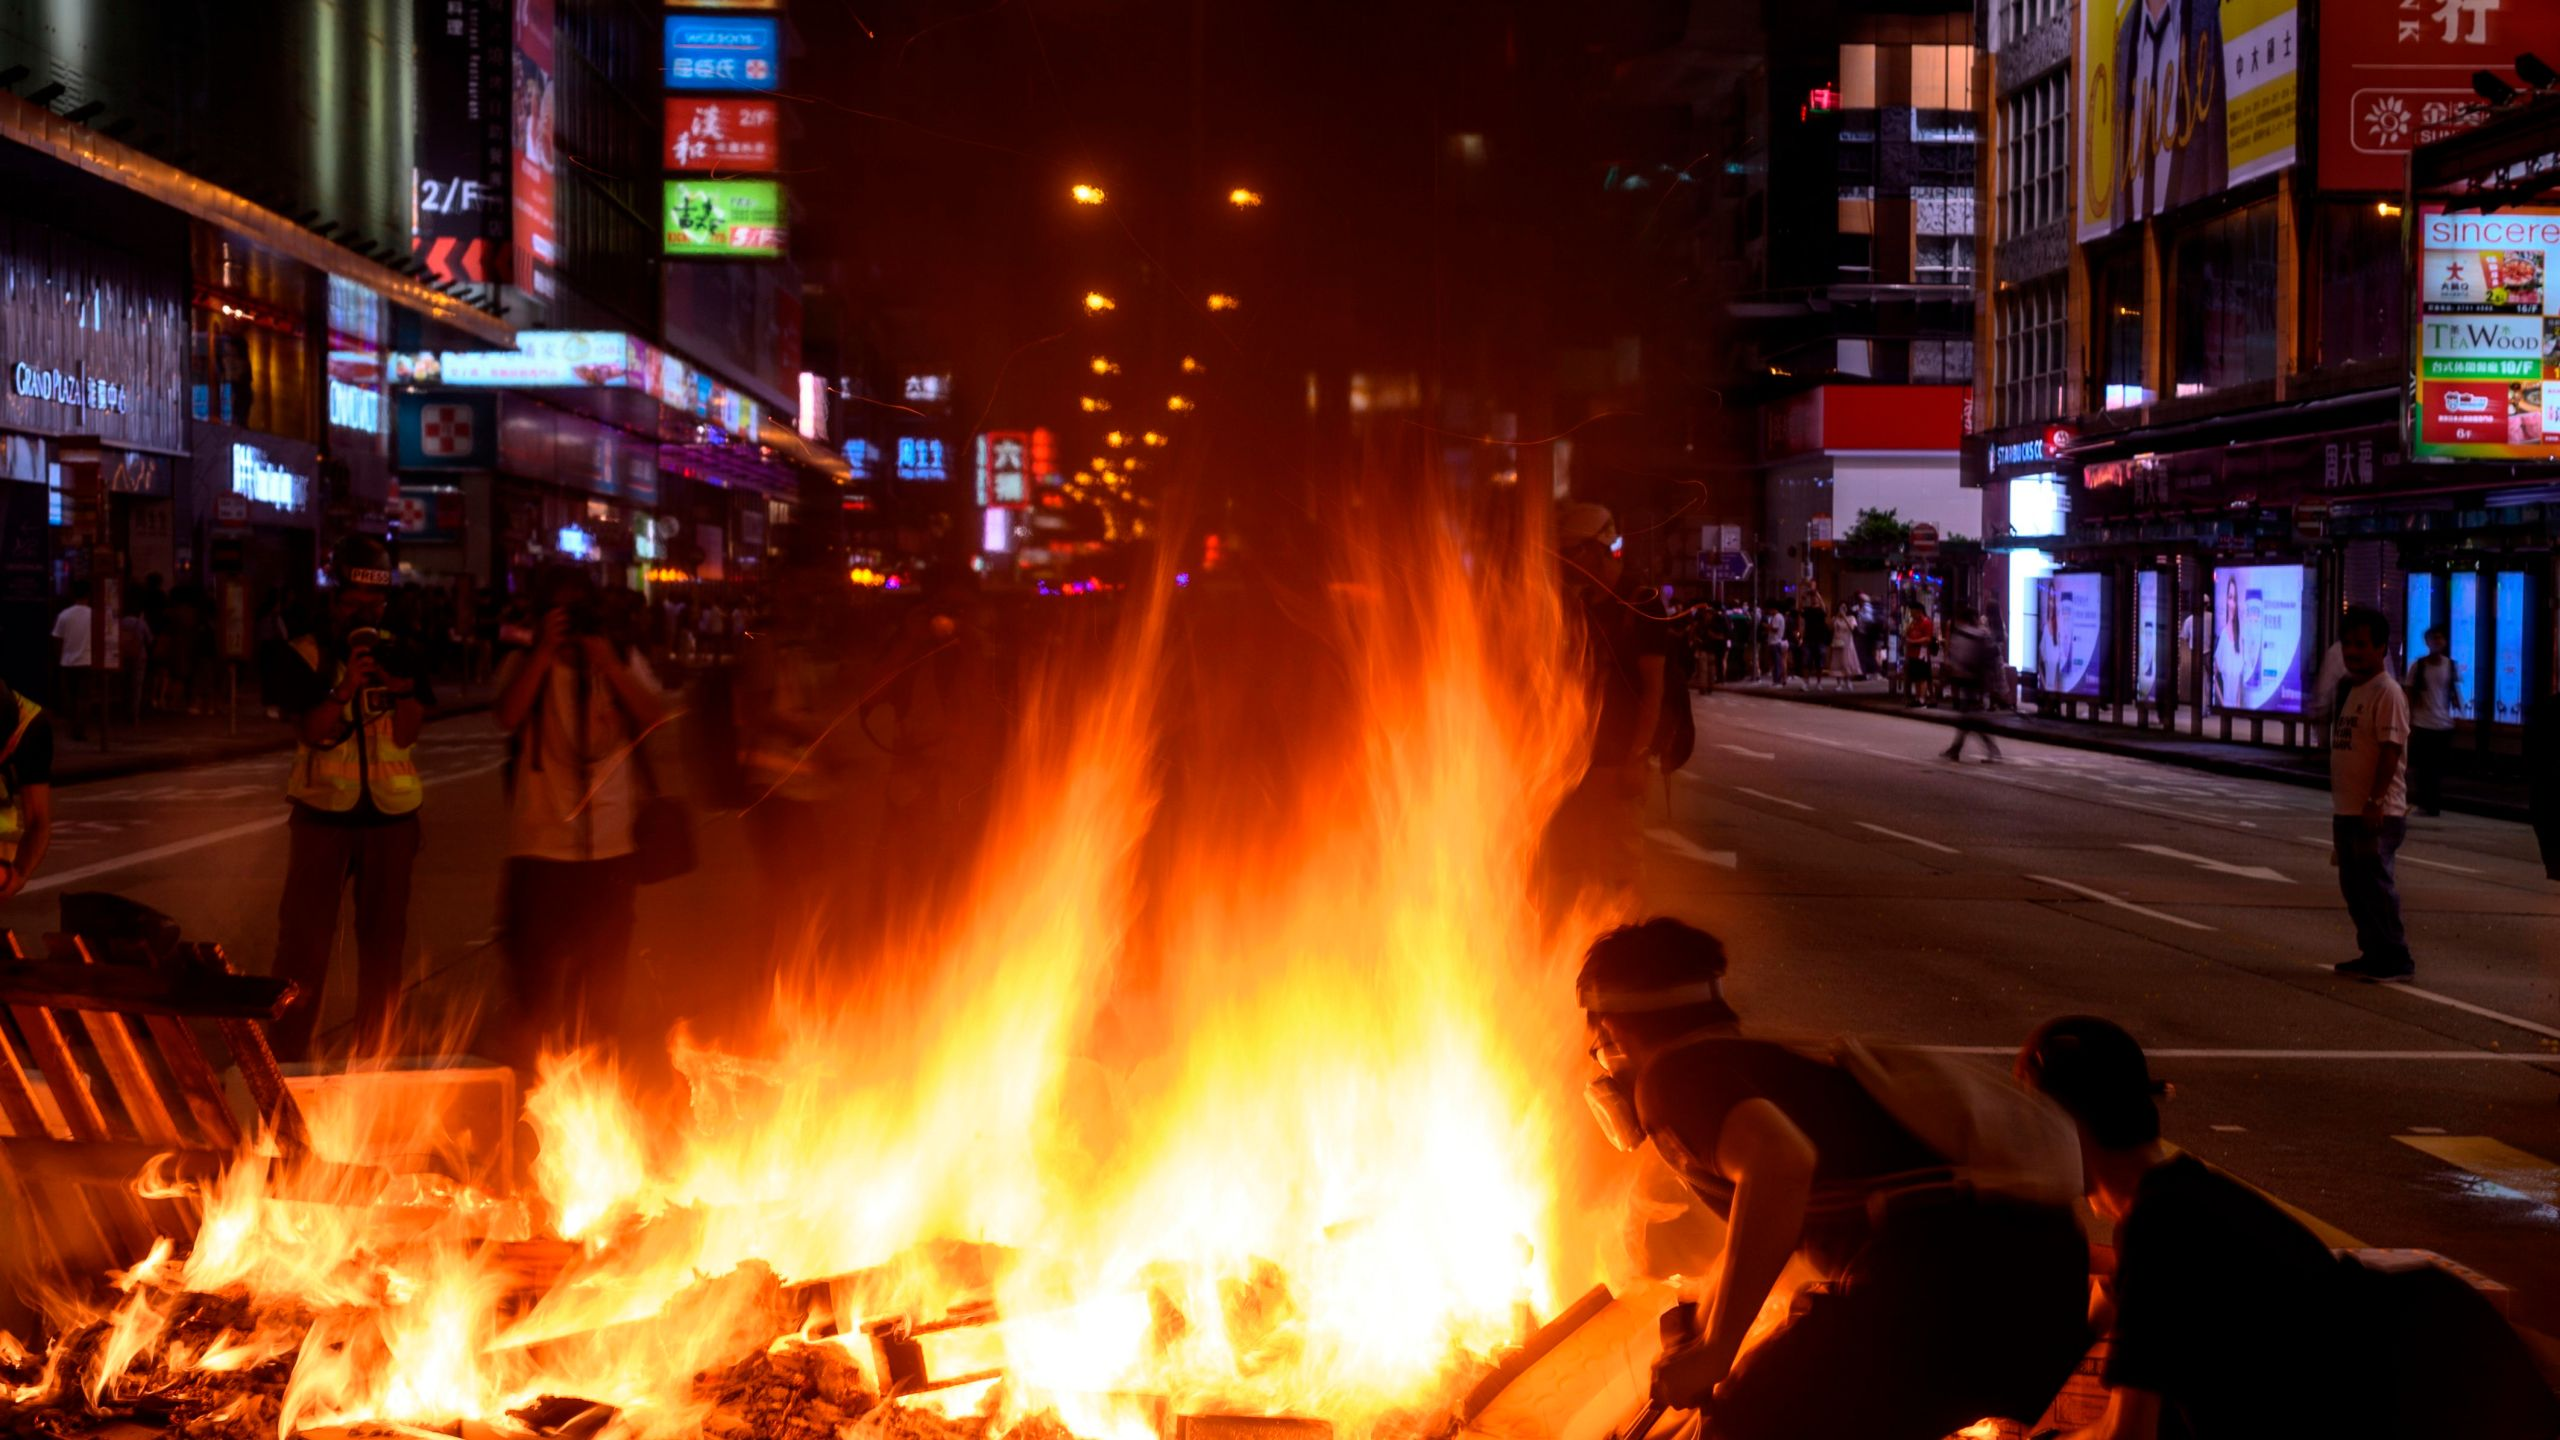 Protesters burn barricades during a protest at Mong Kok district in Hong Kong on September 6, 2019. (Credit: PHILIP FONG/AFP/Getty Images)